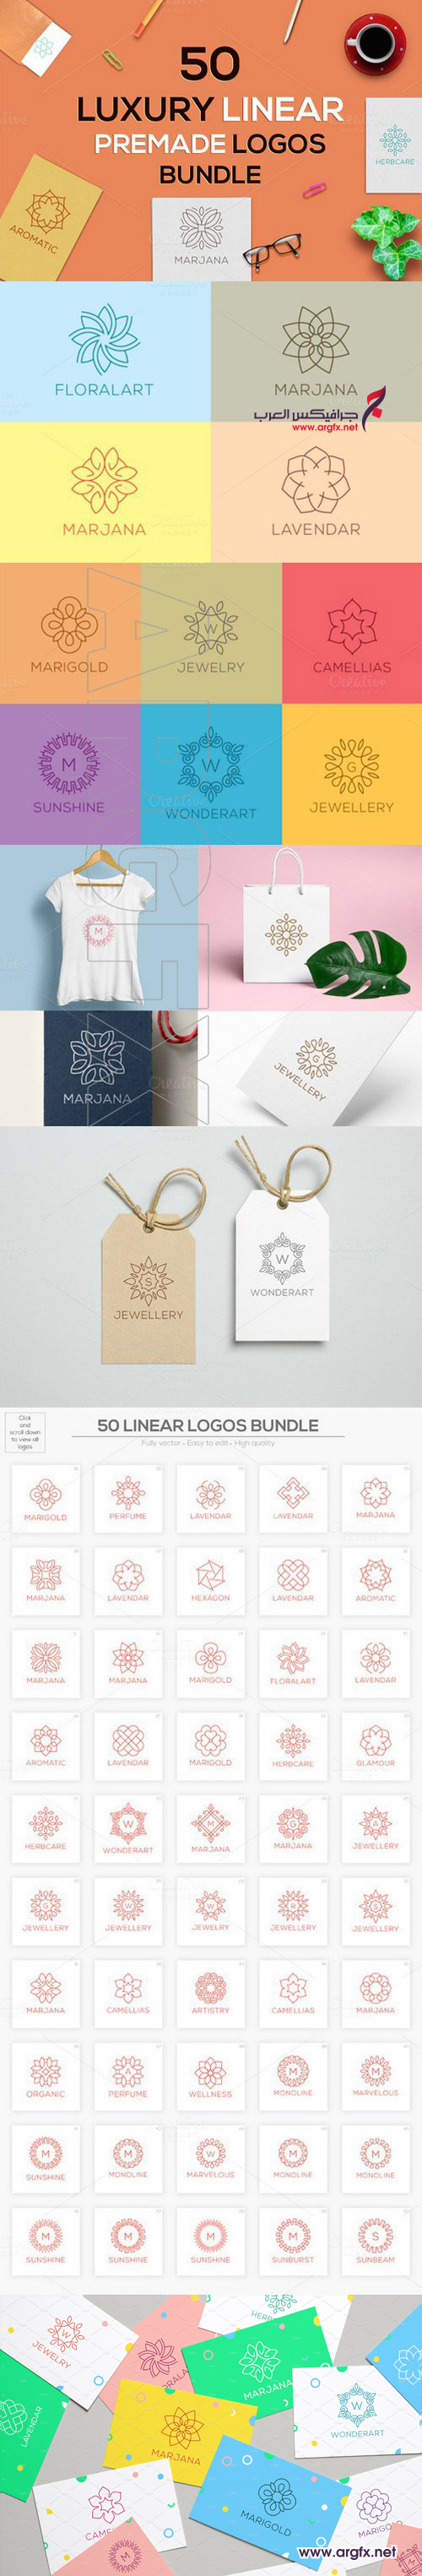 50 Luxury Linear Premade Logos Pack